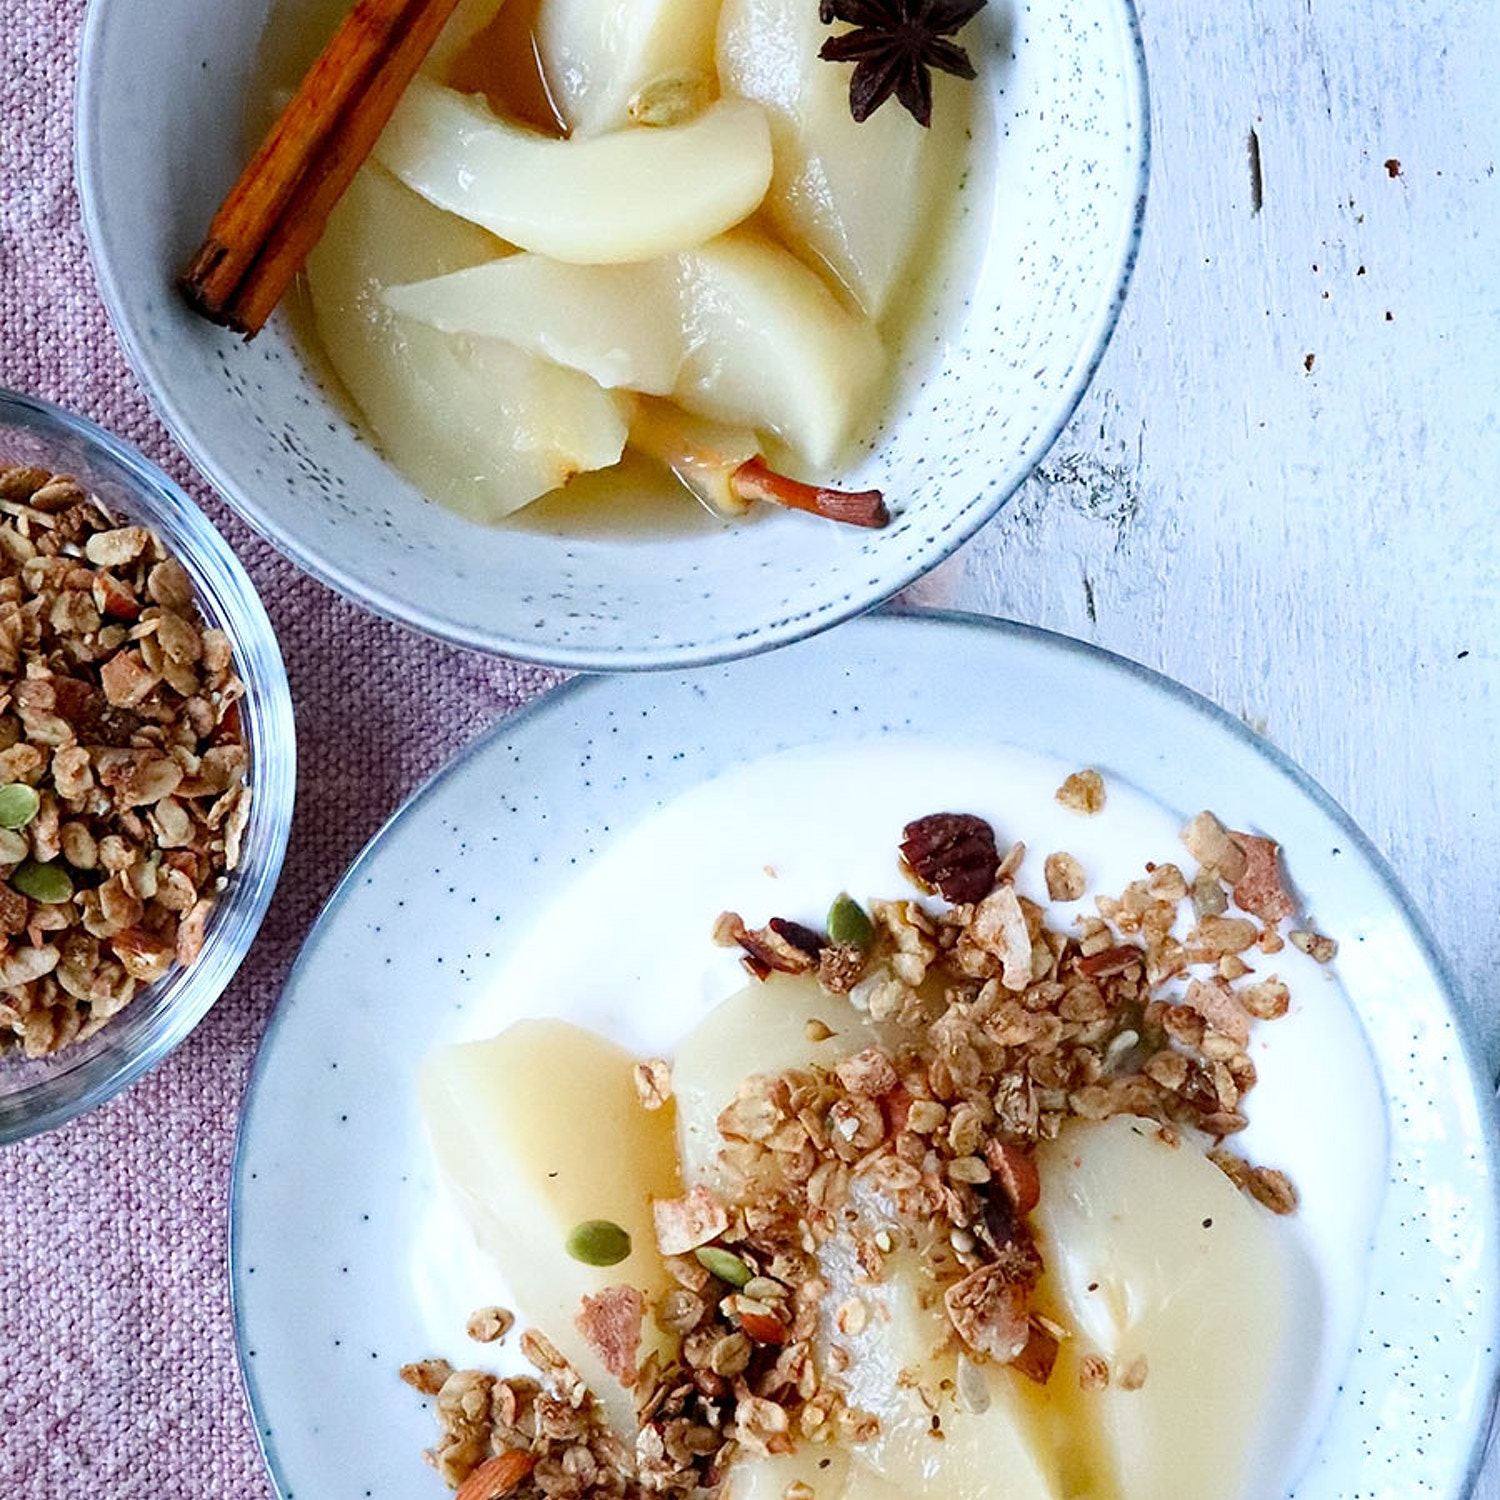 Autumn Spiced Poached Pears